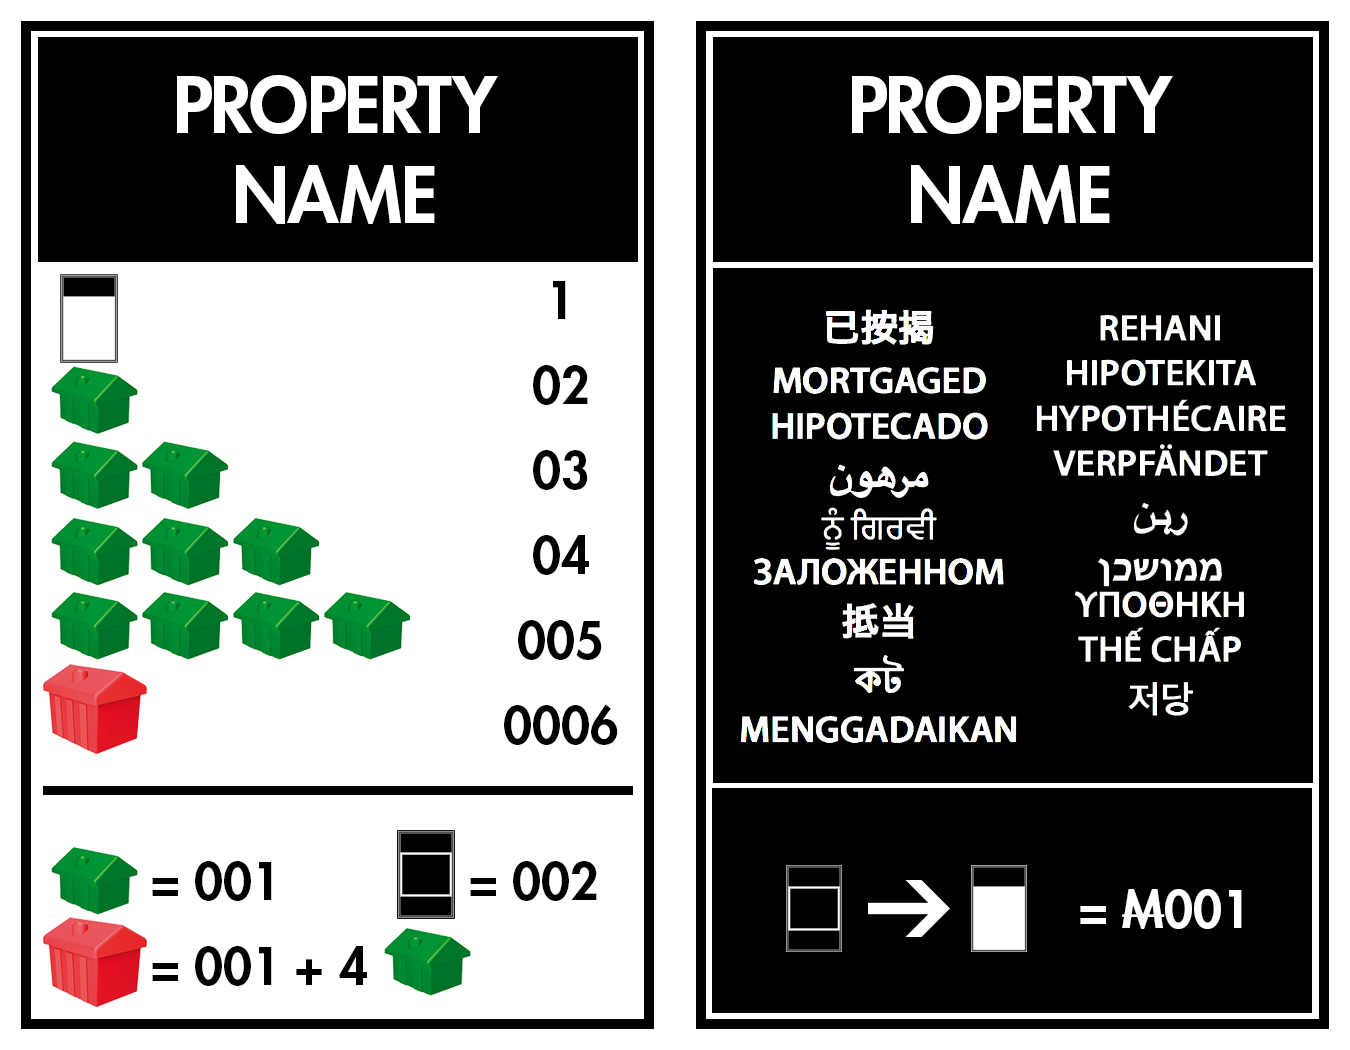 monopoly property cards template - monopoly properties cards template the